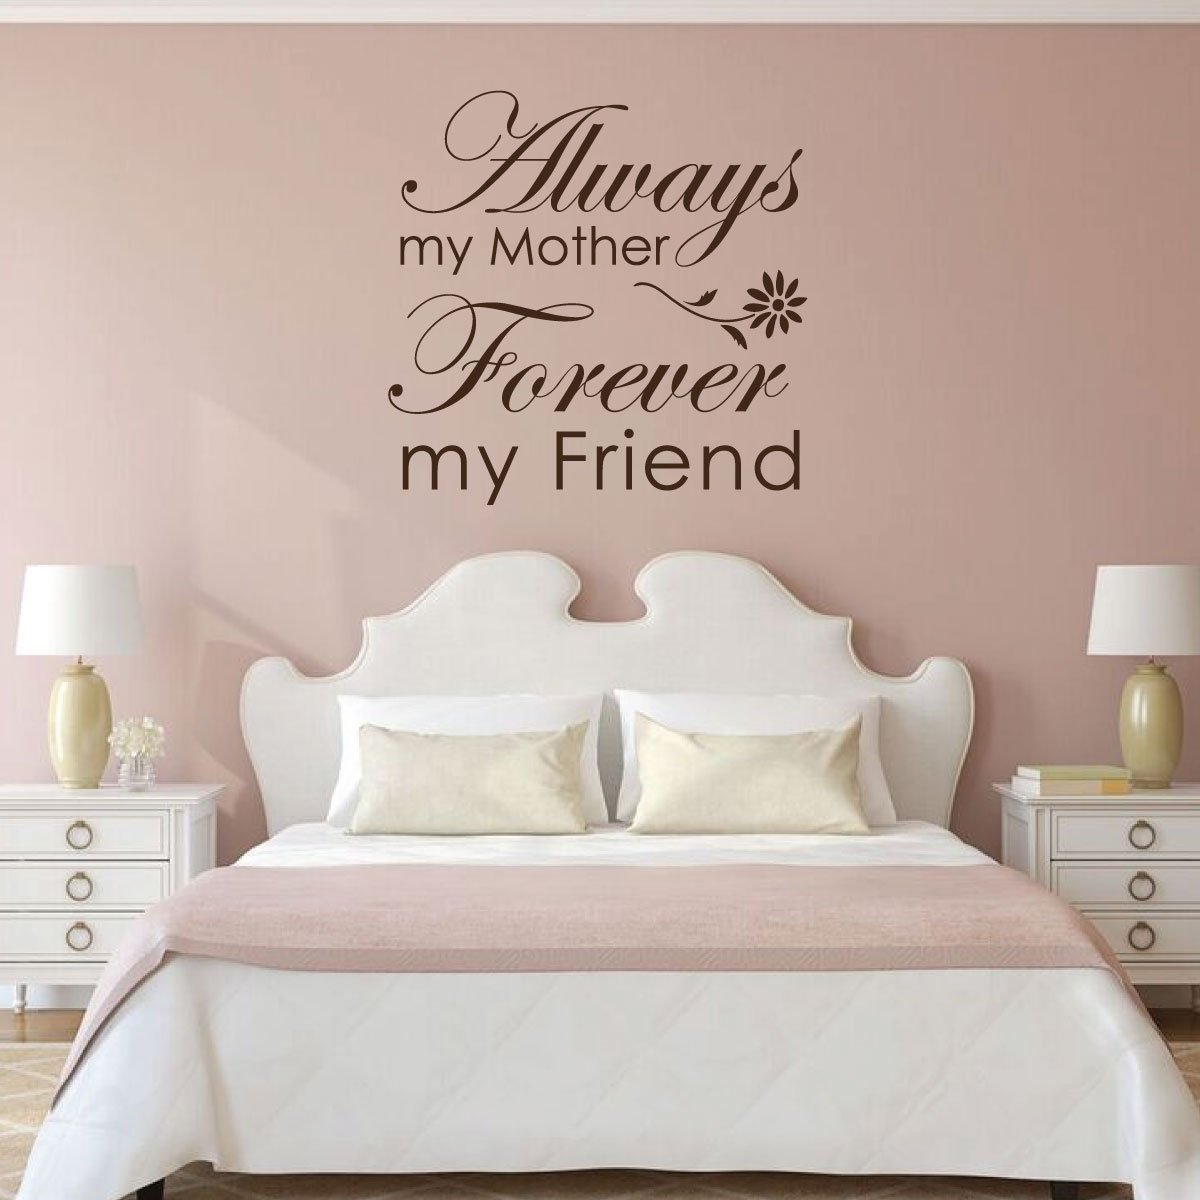 My Mother My Friend Vinyl Wall Decor - Mother's Day Gifts